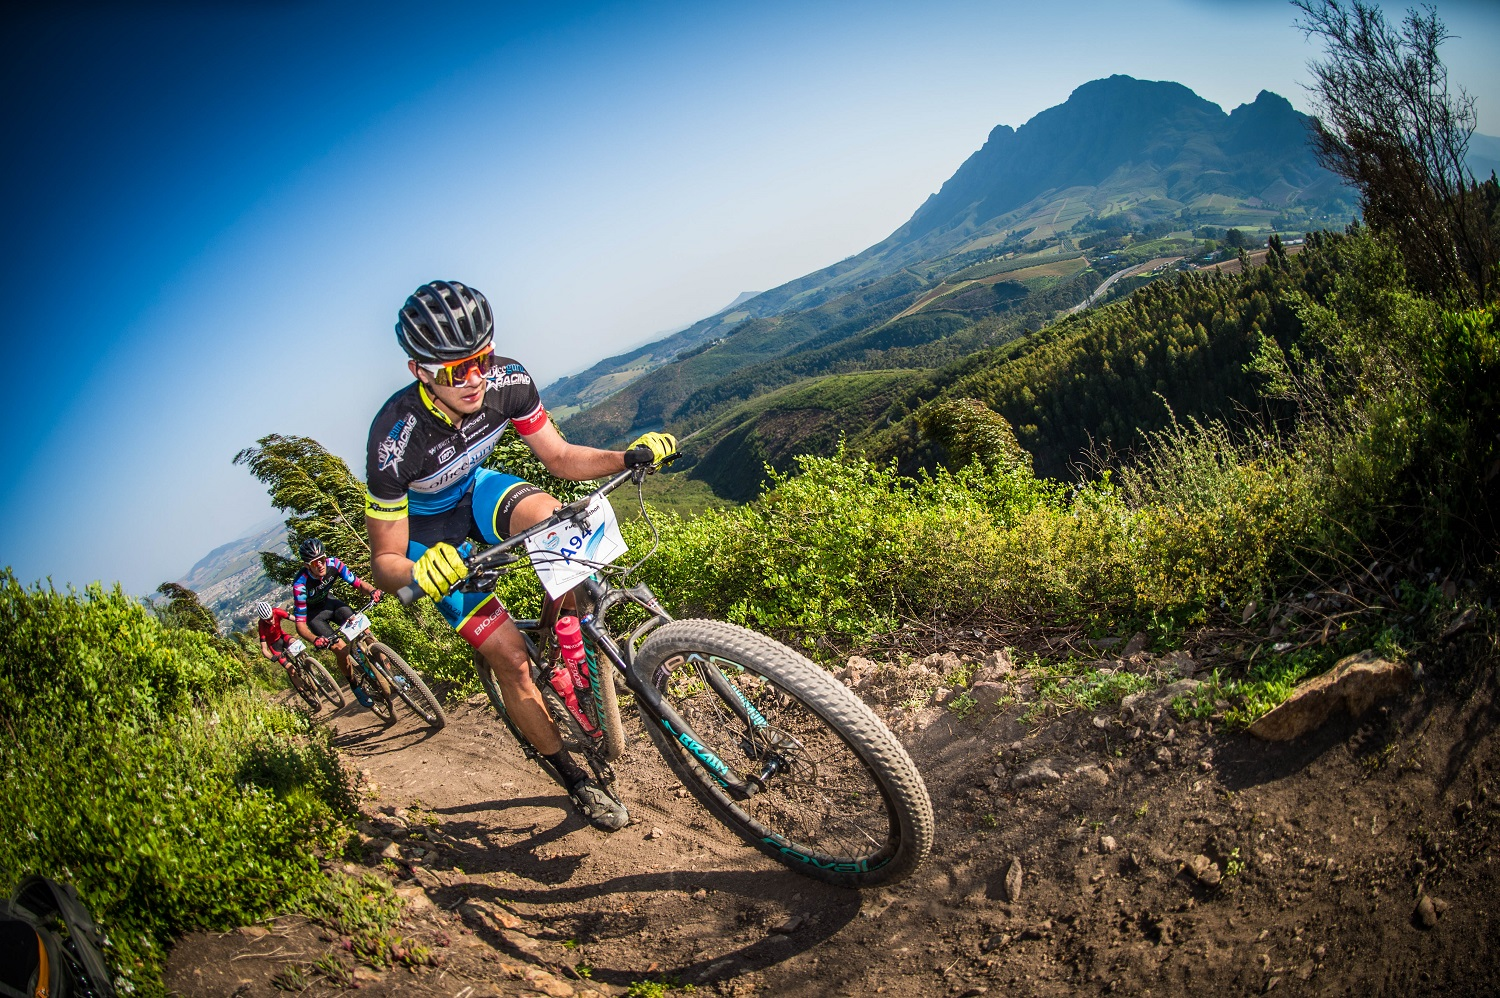 Fedhealth MTB Challenge, TEN THINGS TO DO THIS SPRING